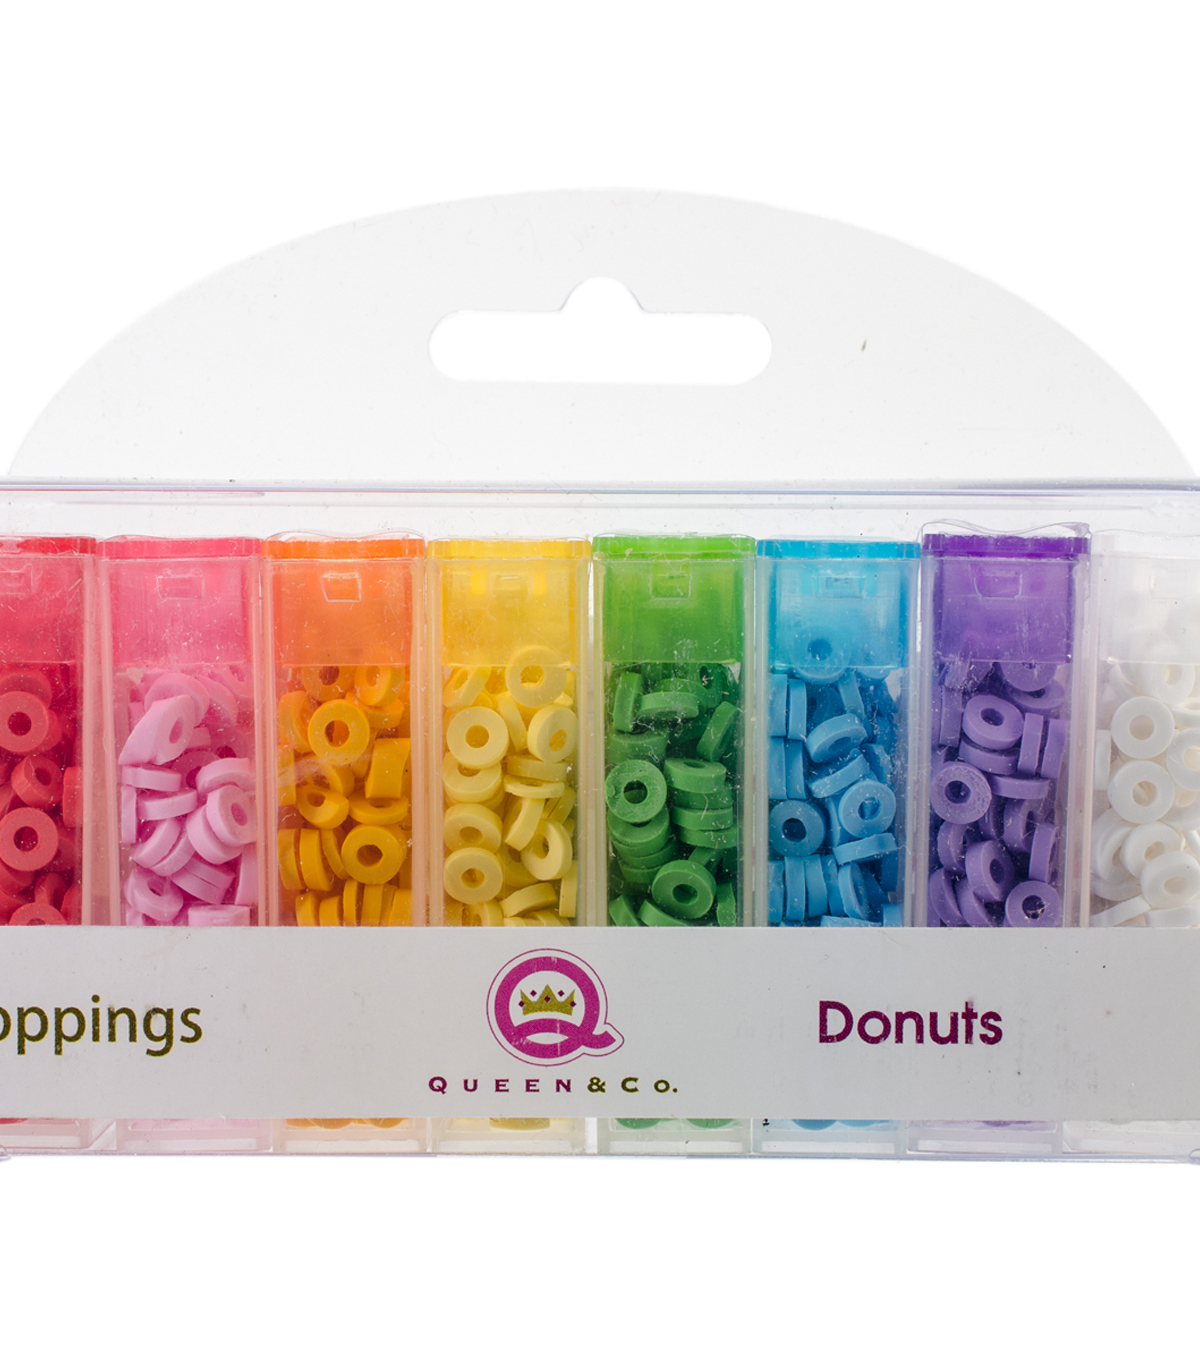 Queen & Co Topping Set-Donuts